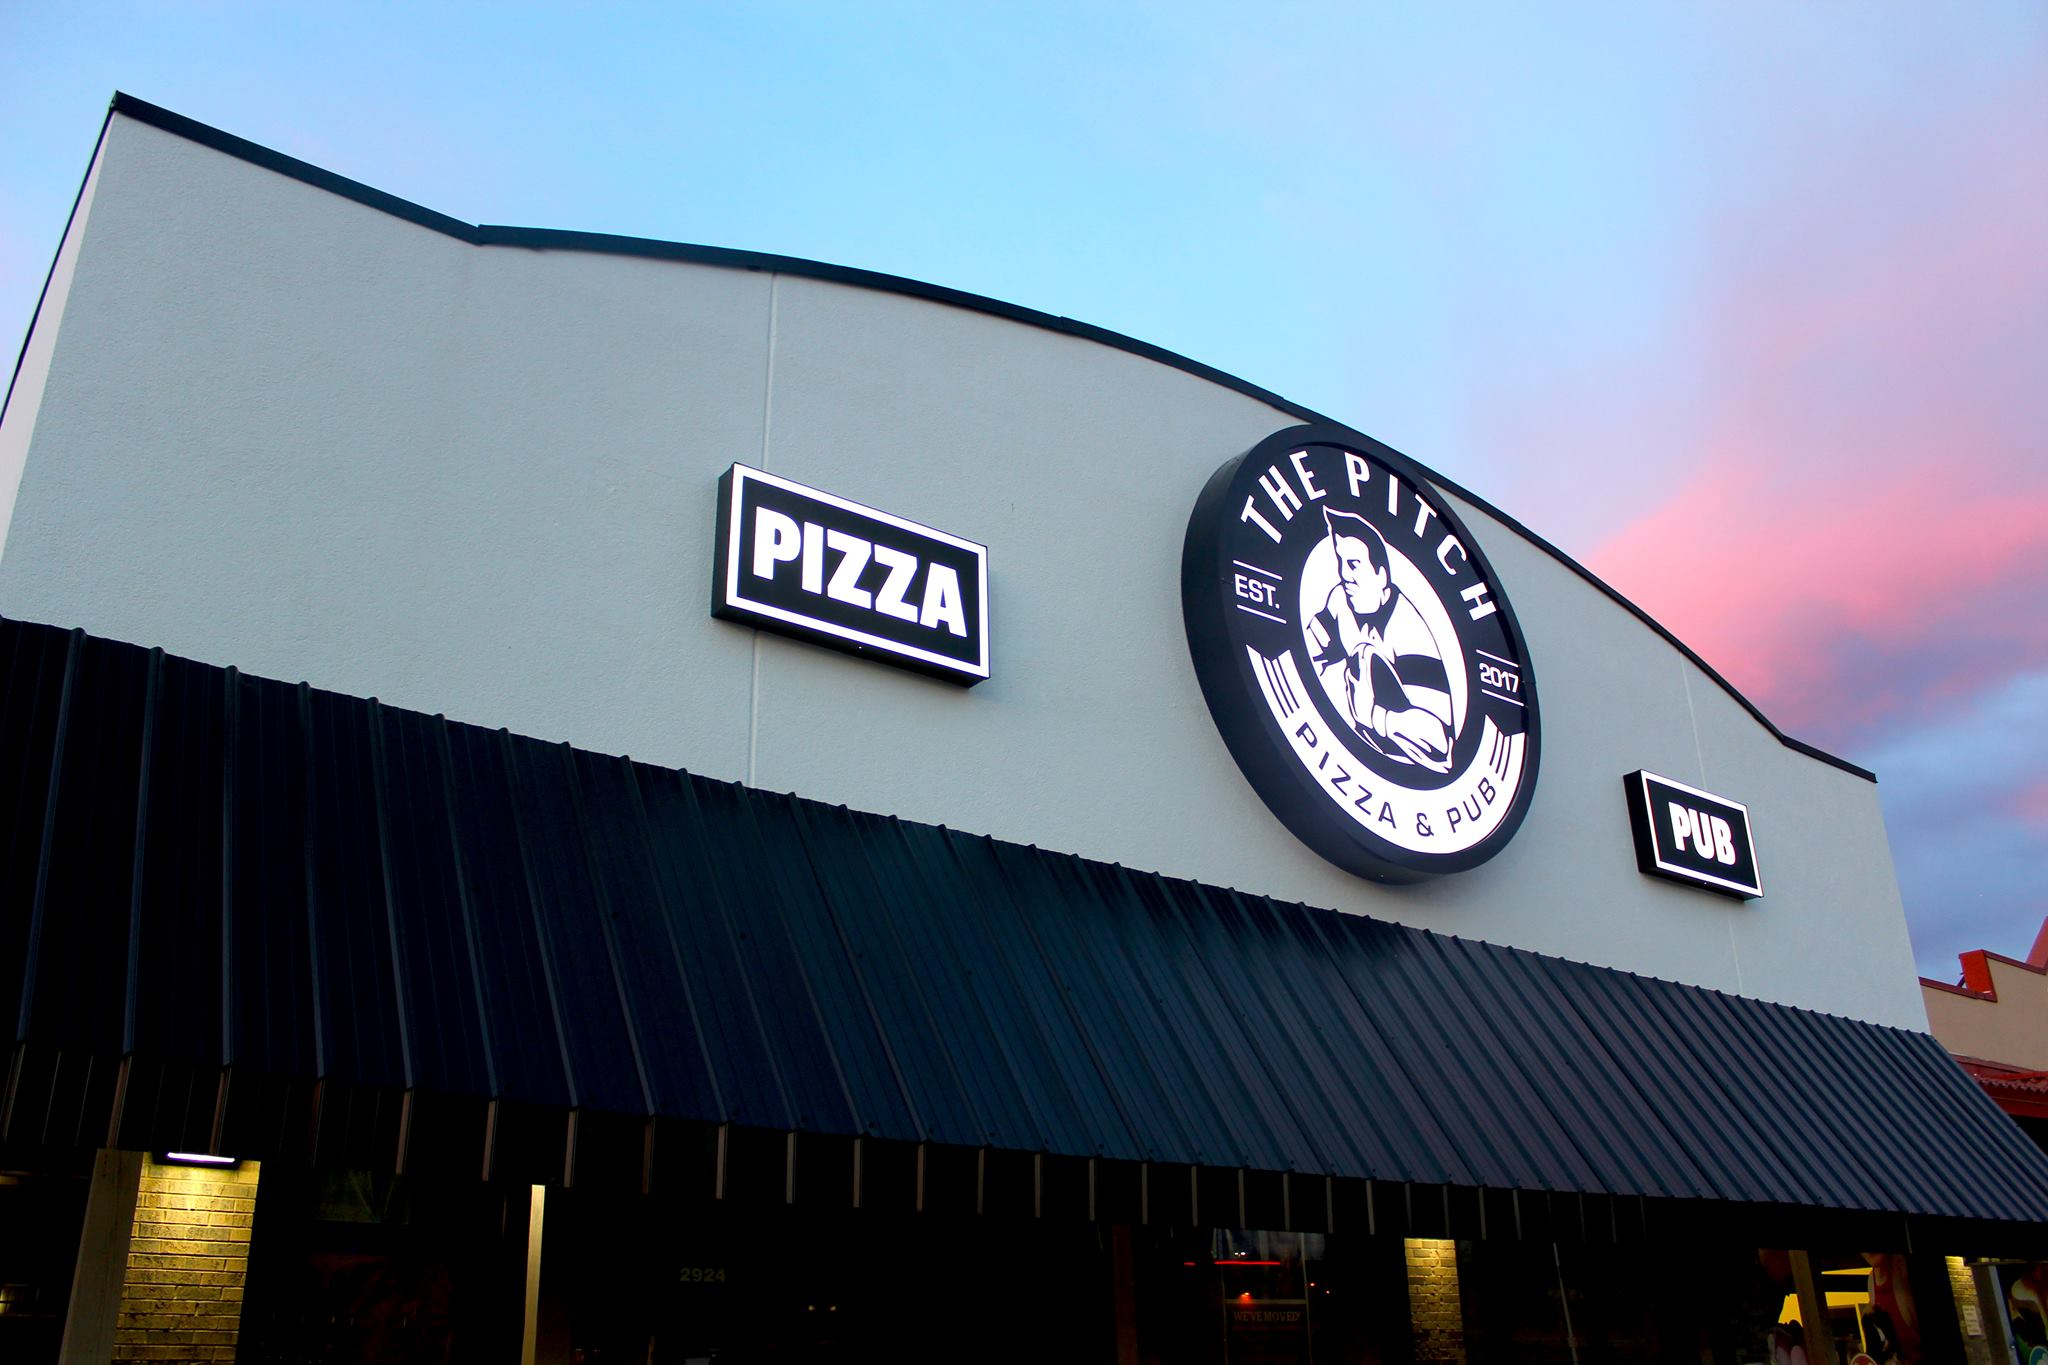 The Pitch Pizza and Pub places to eat Springfield, MO